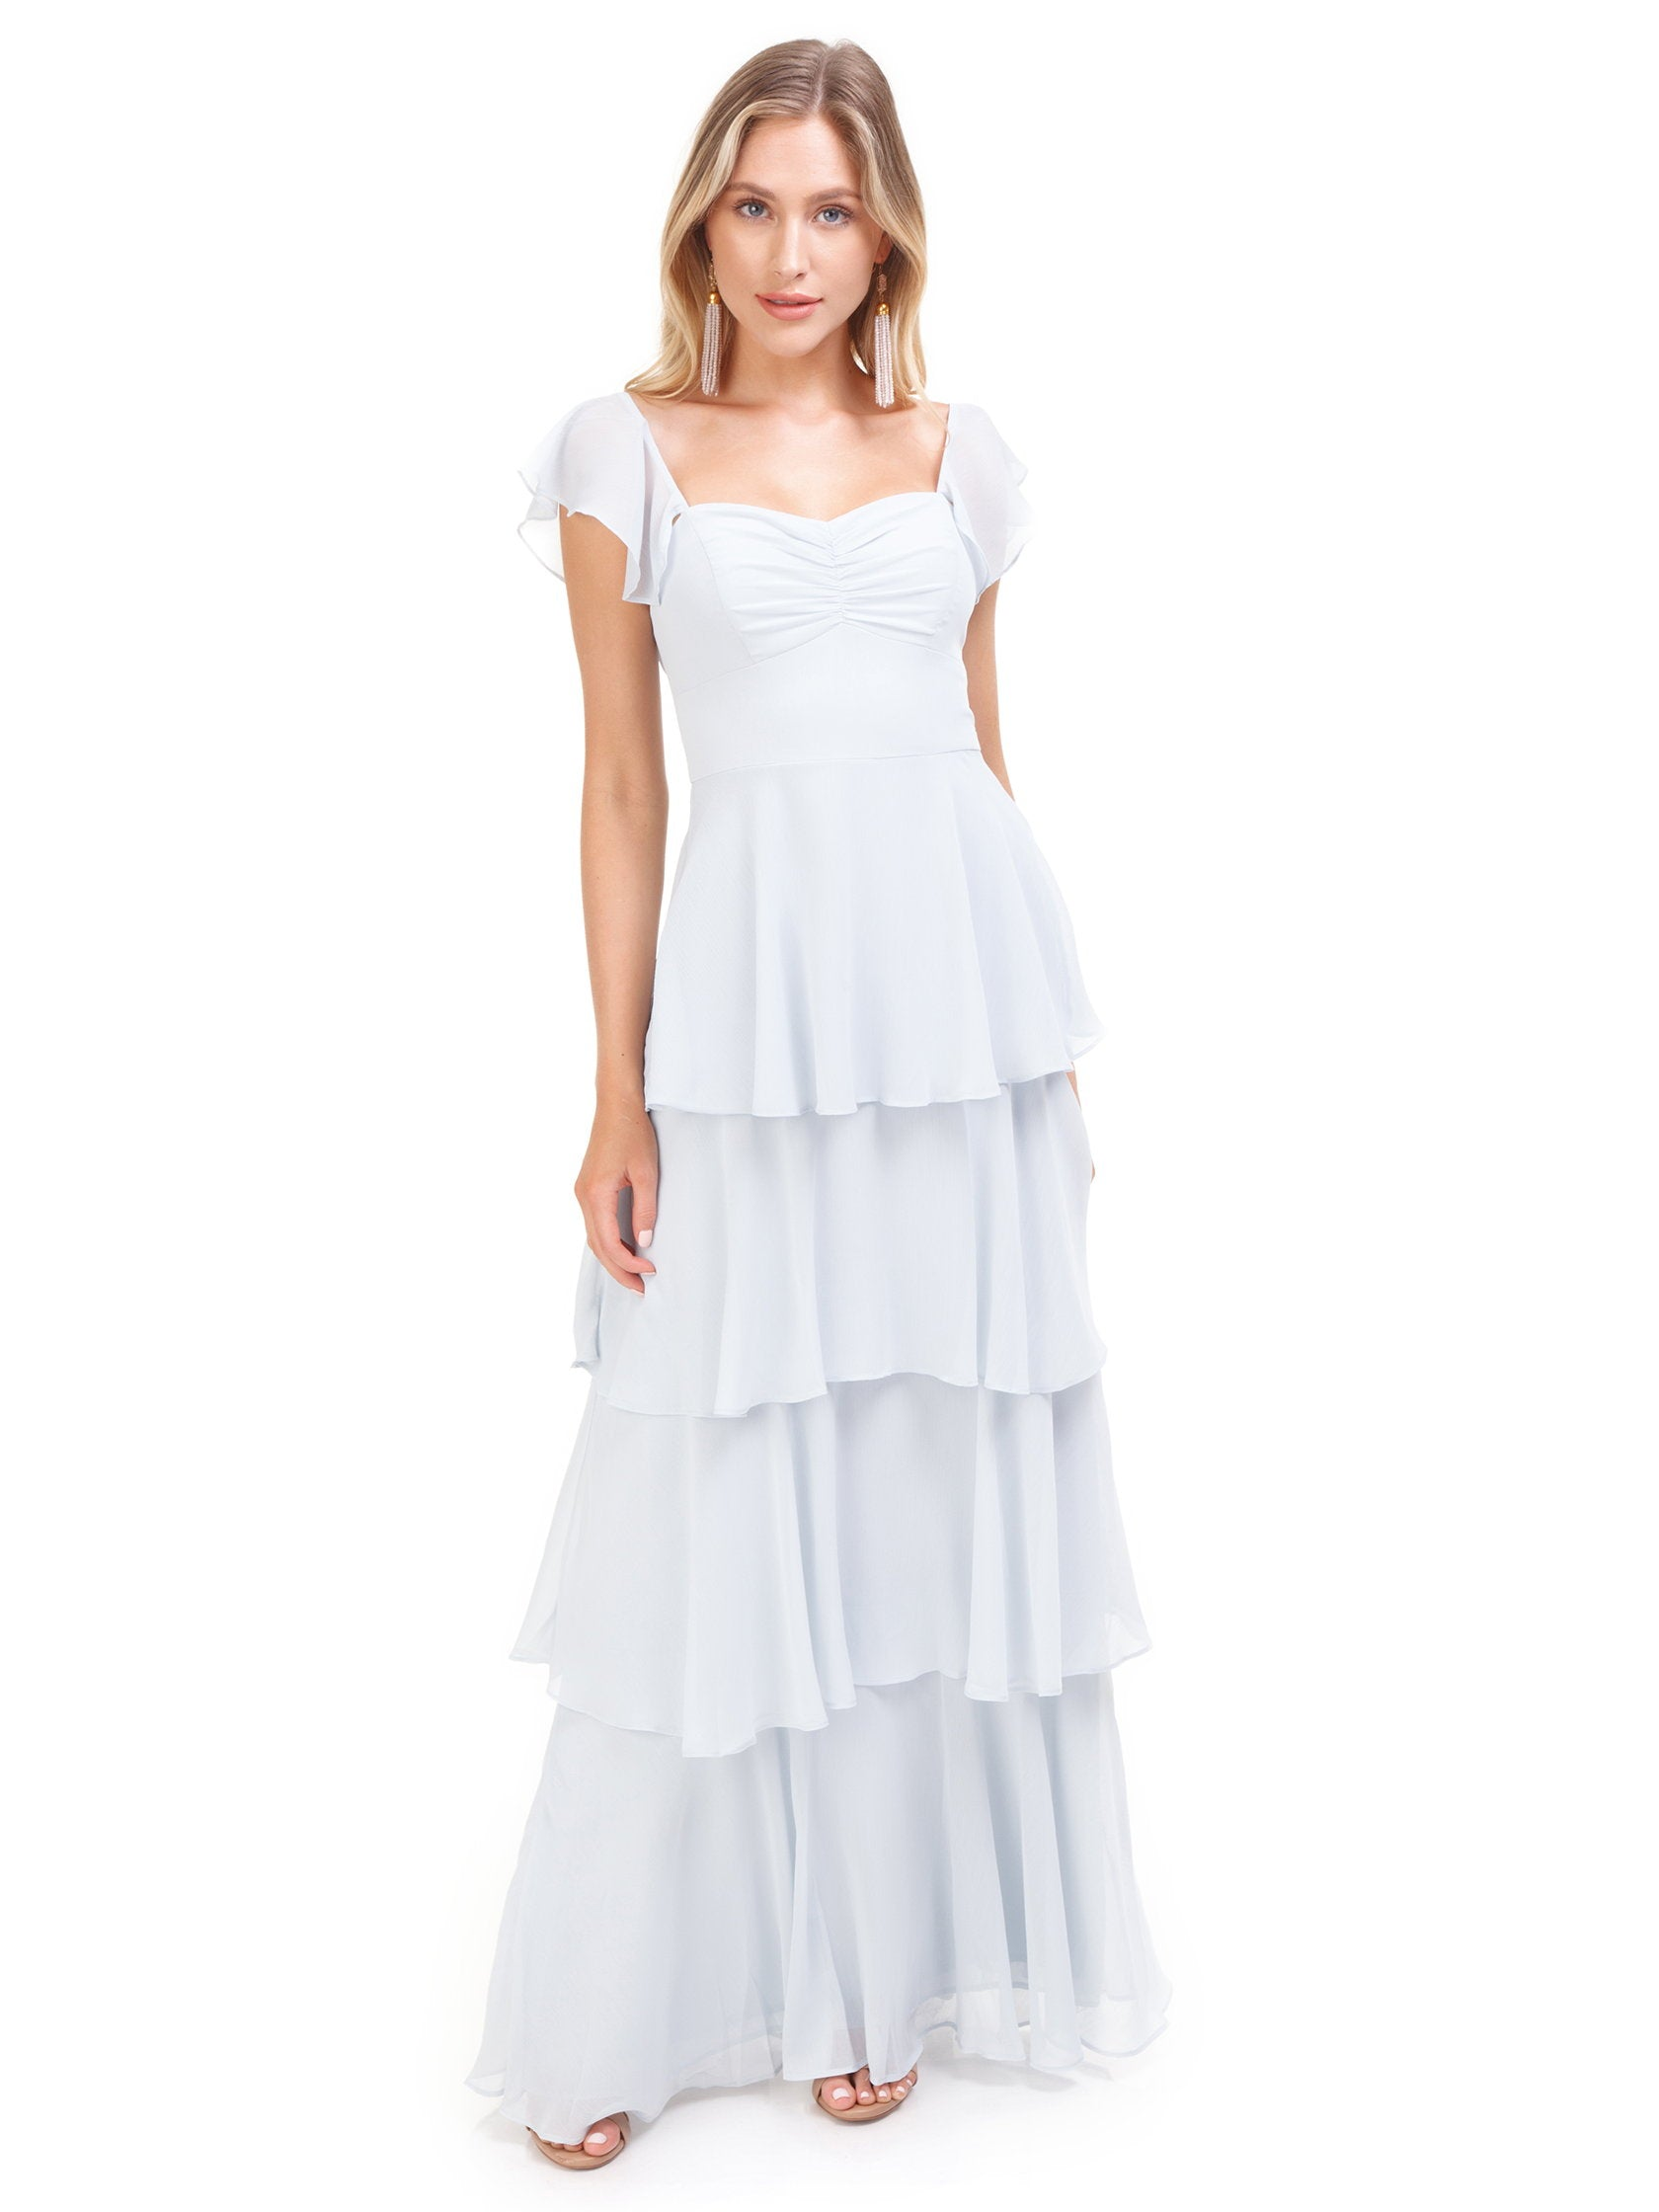 Girl outfit in a dress rental from WAYF called Abby Off Shoulder Tiered Maxi Dress